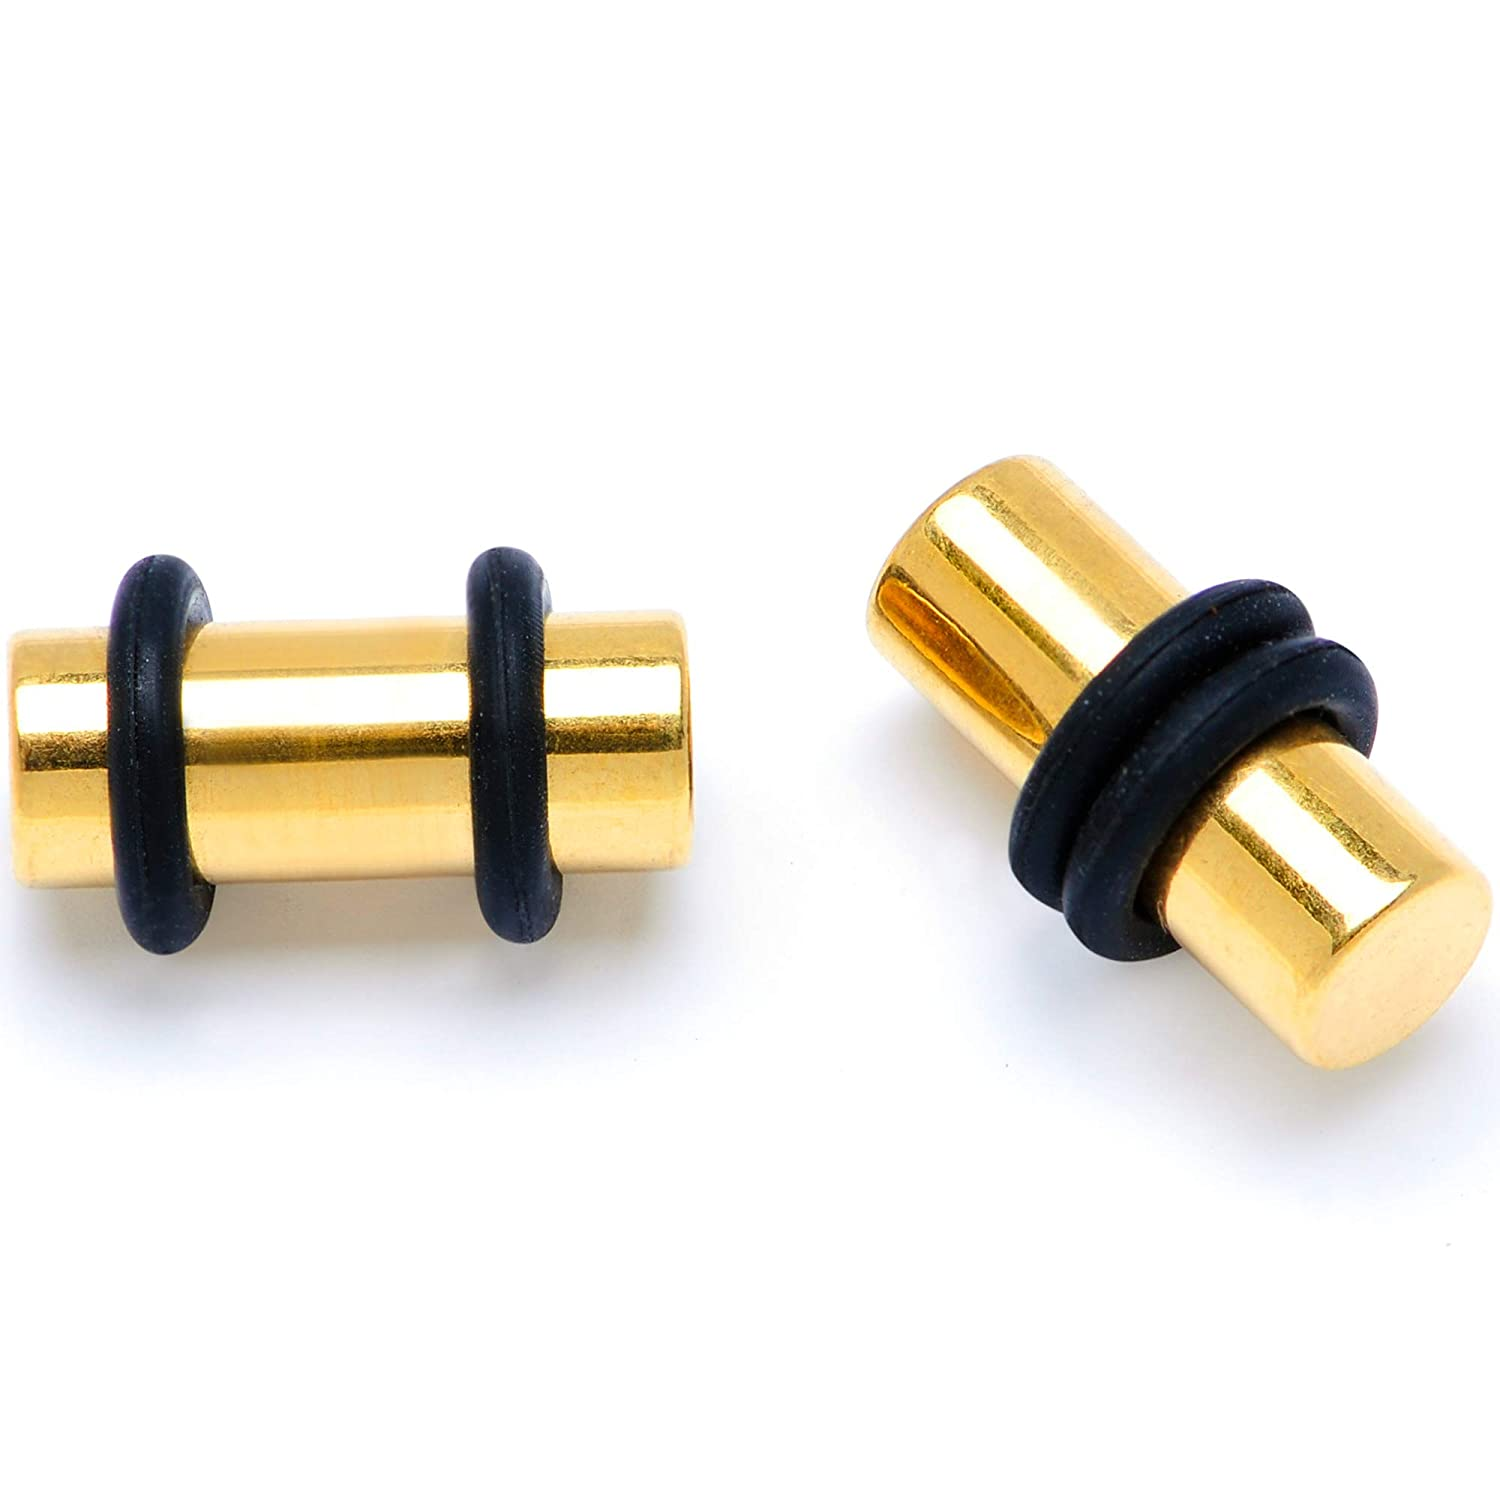 Body Candy Unisex 4Pc PVD Steel Ear Gauges Stretching Kit Tapers Straight Plug Set